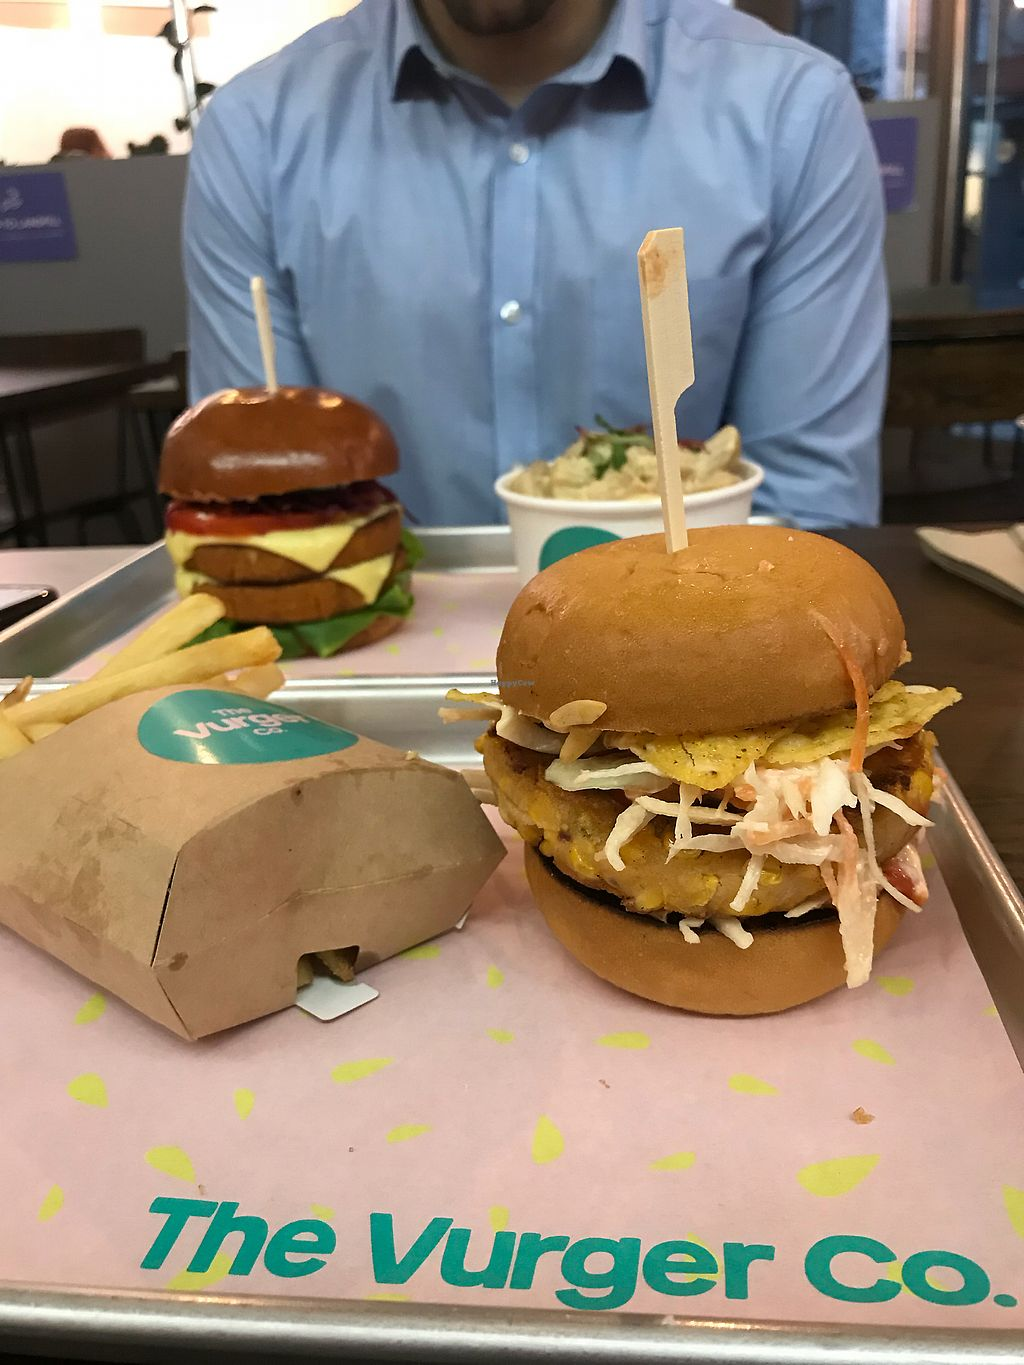 """Photo of The Vurger Co.  by <a href=""""/members/profile/Melissaj1990"""">Melissaj1990</a> <br/>Epic burgers! <br/> April 16, 2018  - <a href='/contact/abuse/image/92574/386880'>Report</a>"""